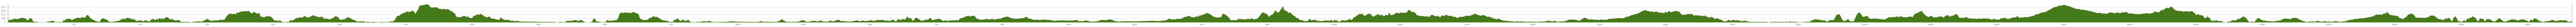 Elevation profile Cycle Route Land's End to John o'Groats